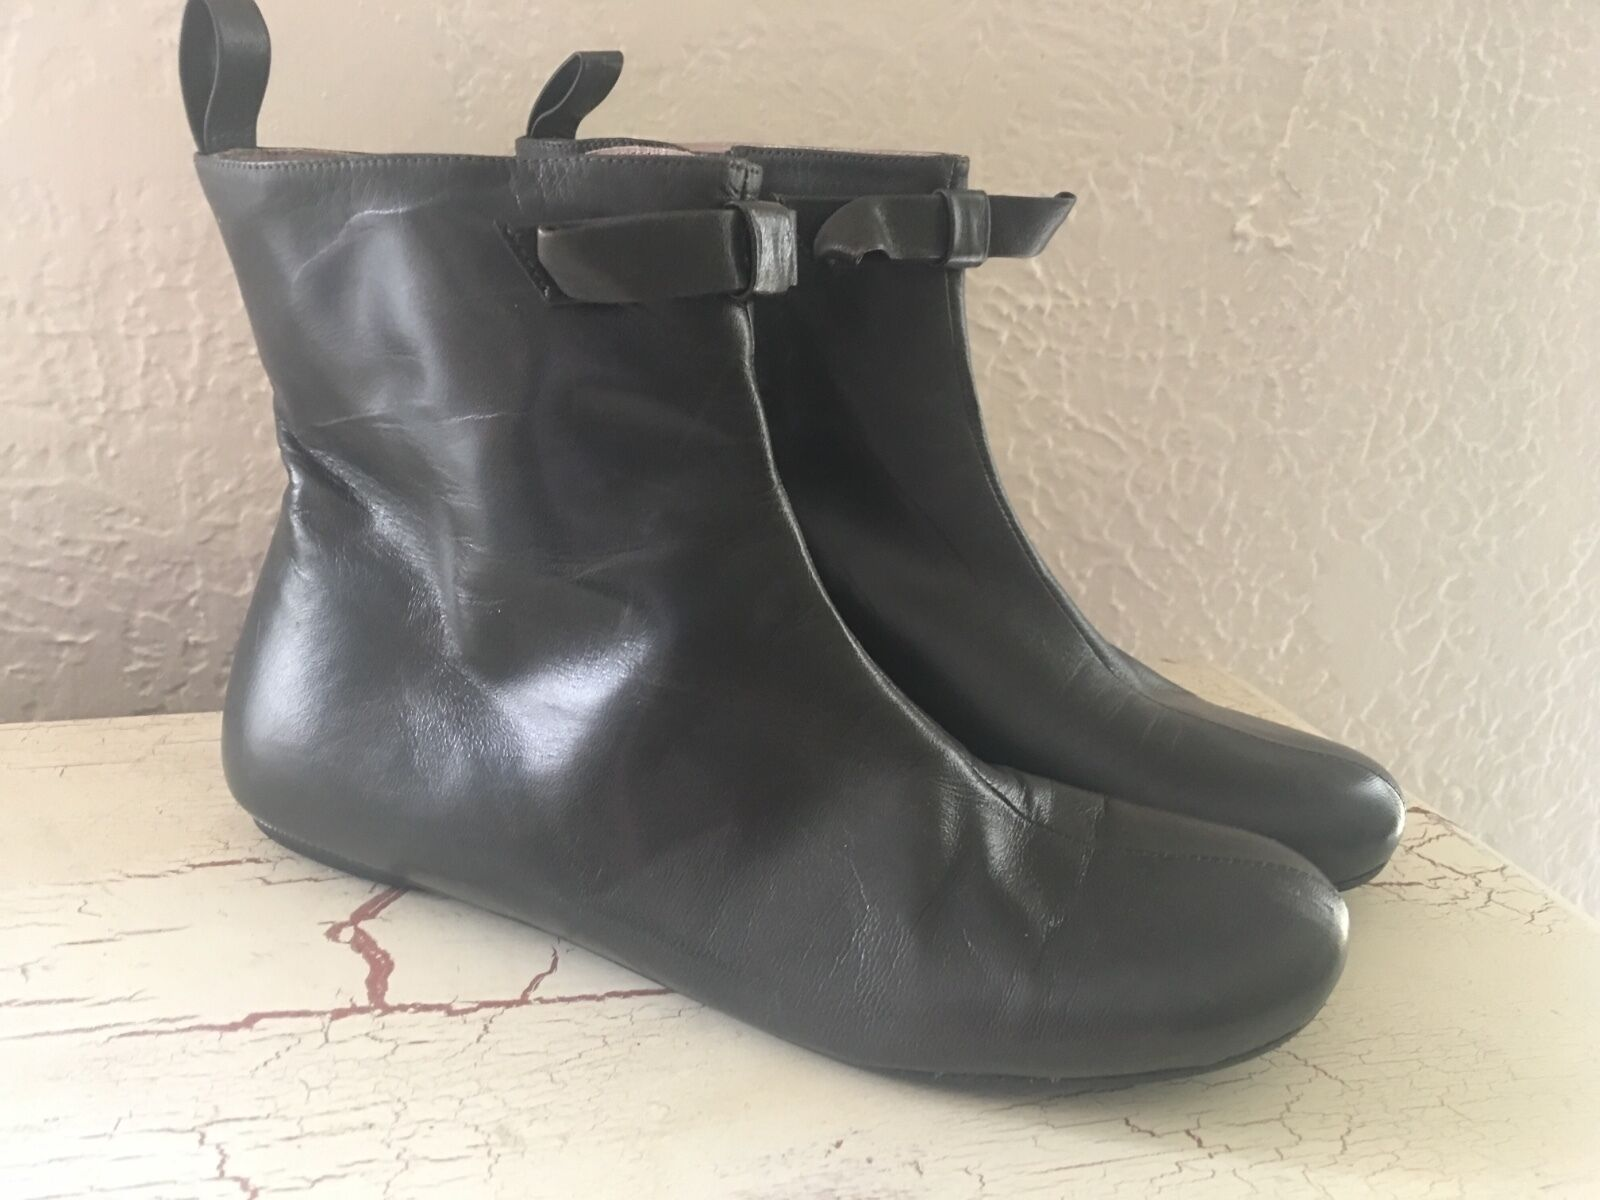 Marc By Marc Jacobs Ankle Boots, Size 38 (8 US), NWOT